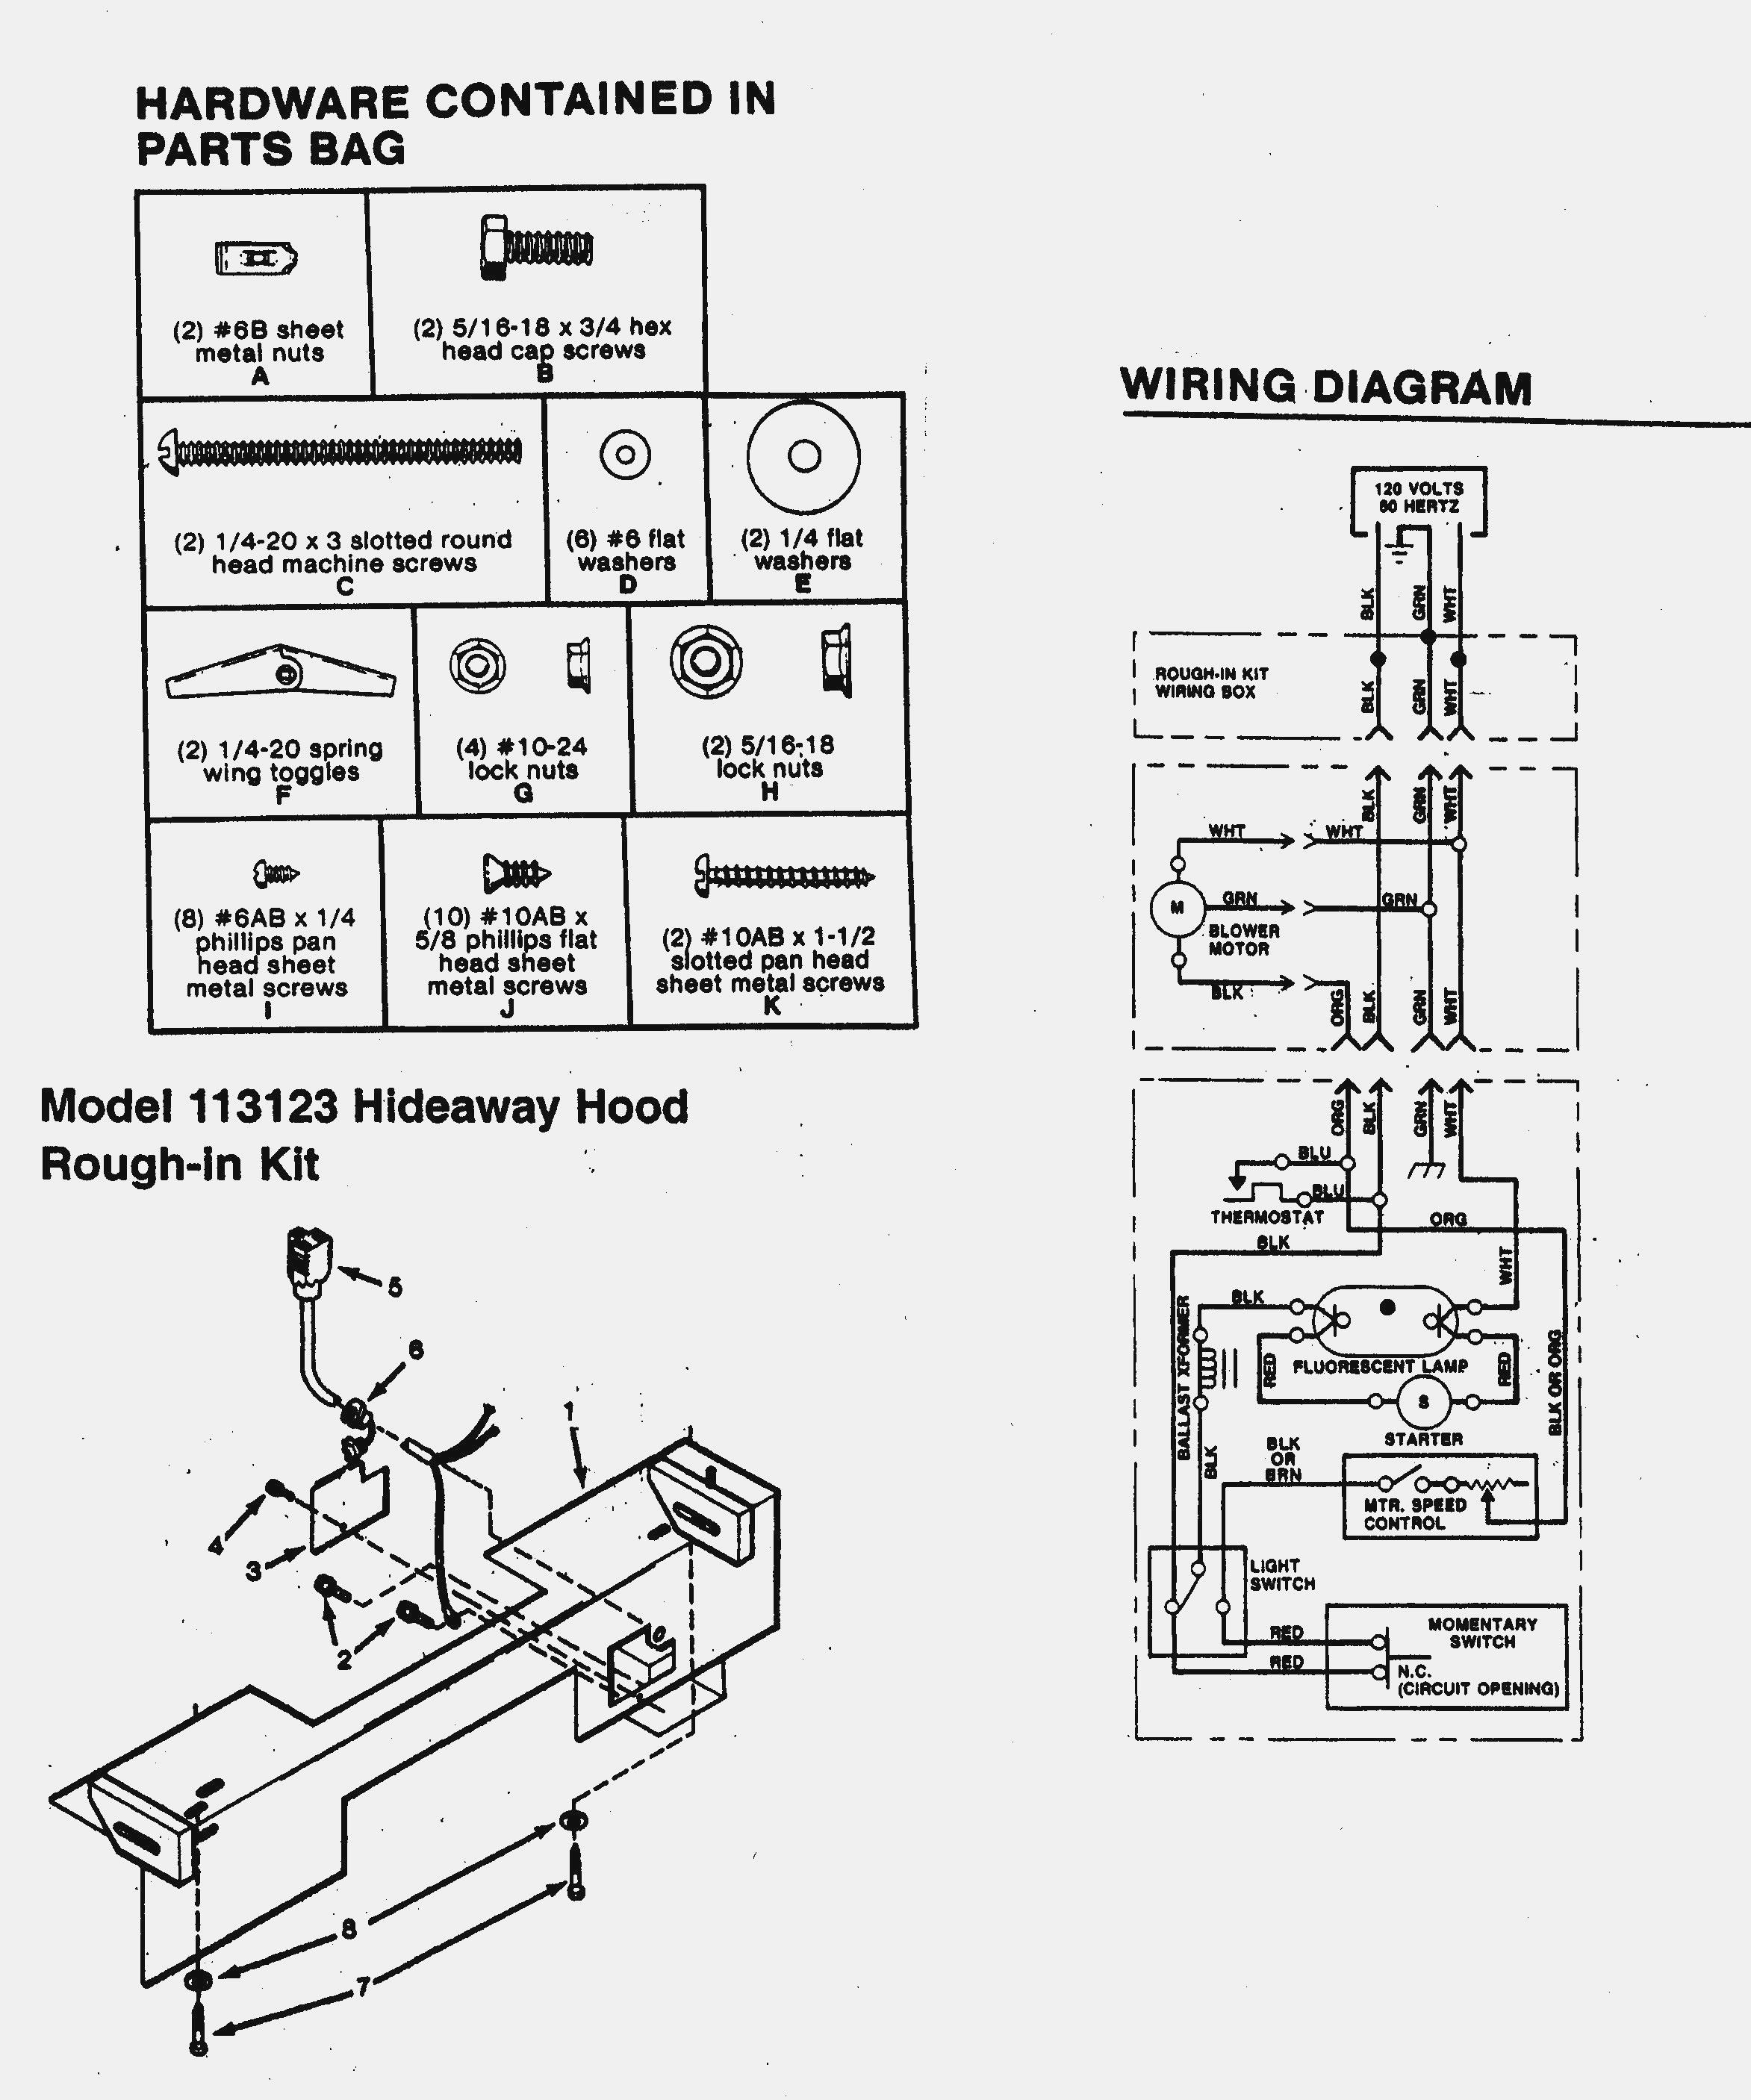 Unique Bathroom Vent Fan Wiring Diagram Bathroom Fan Light Diagram Bathroom Vent Fan